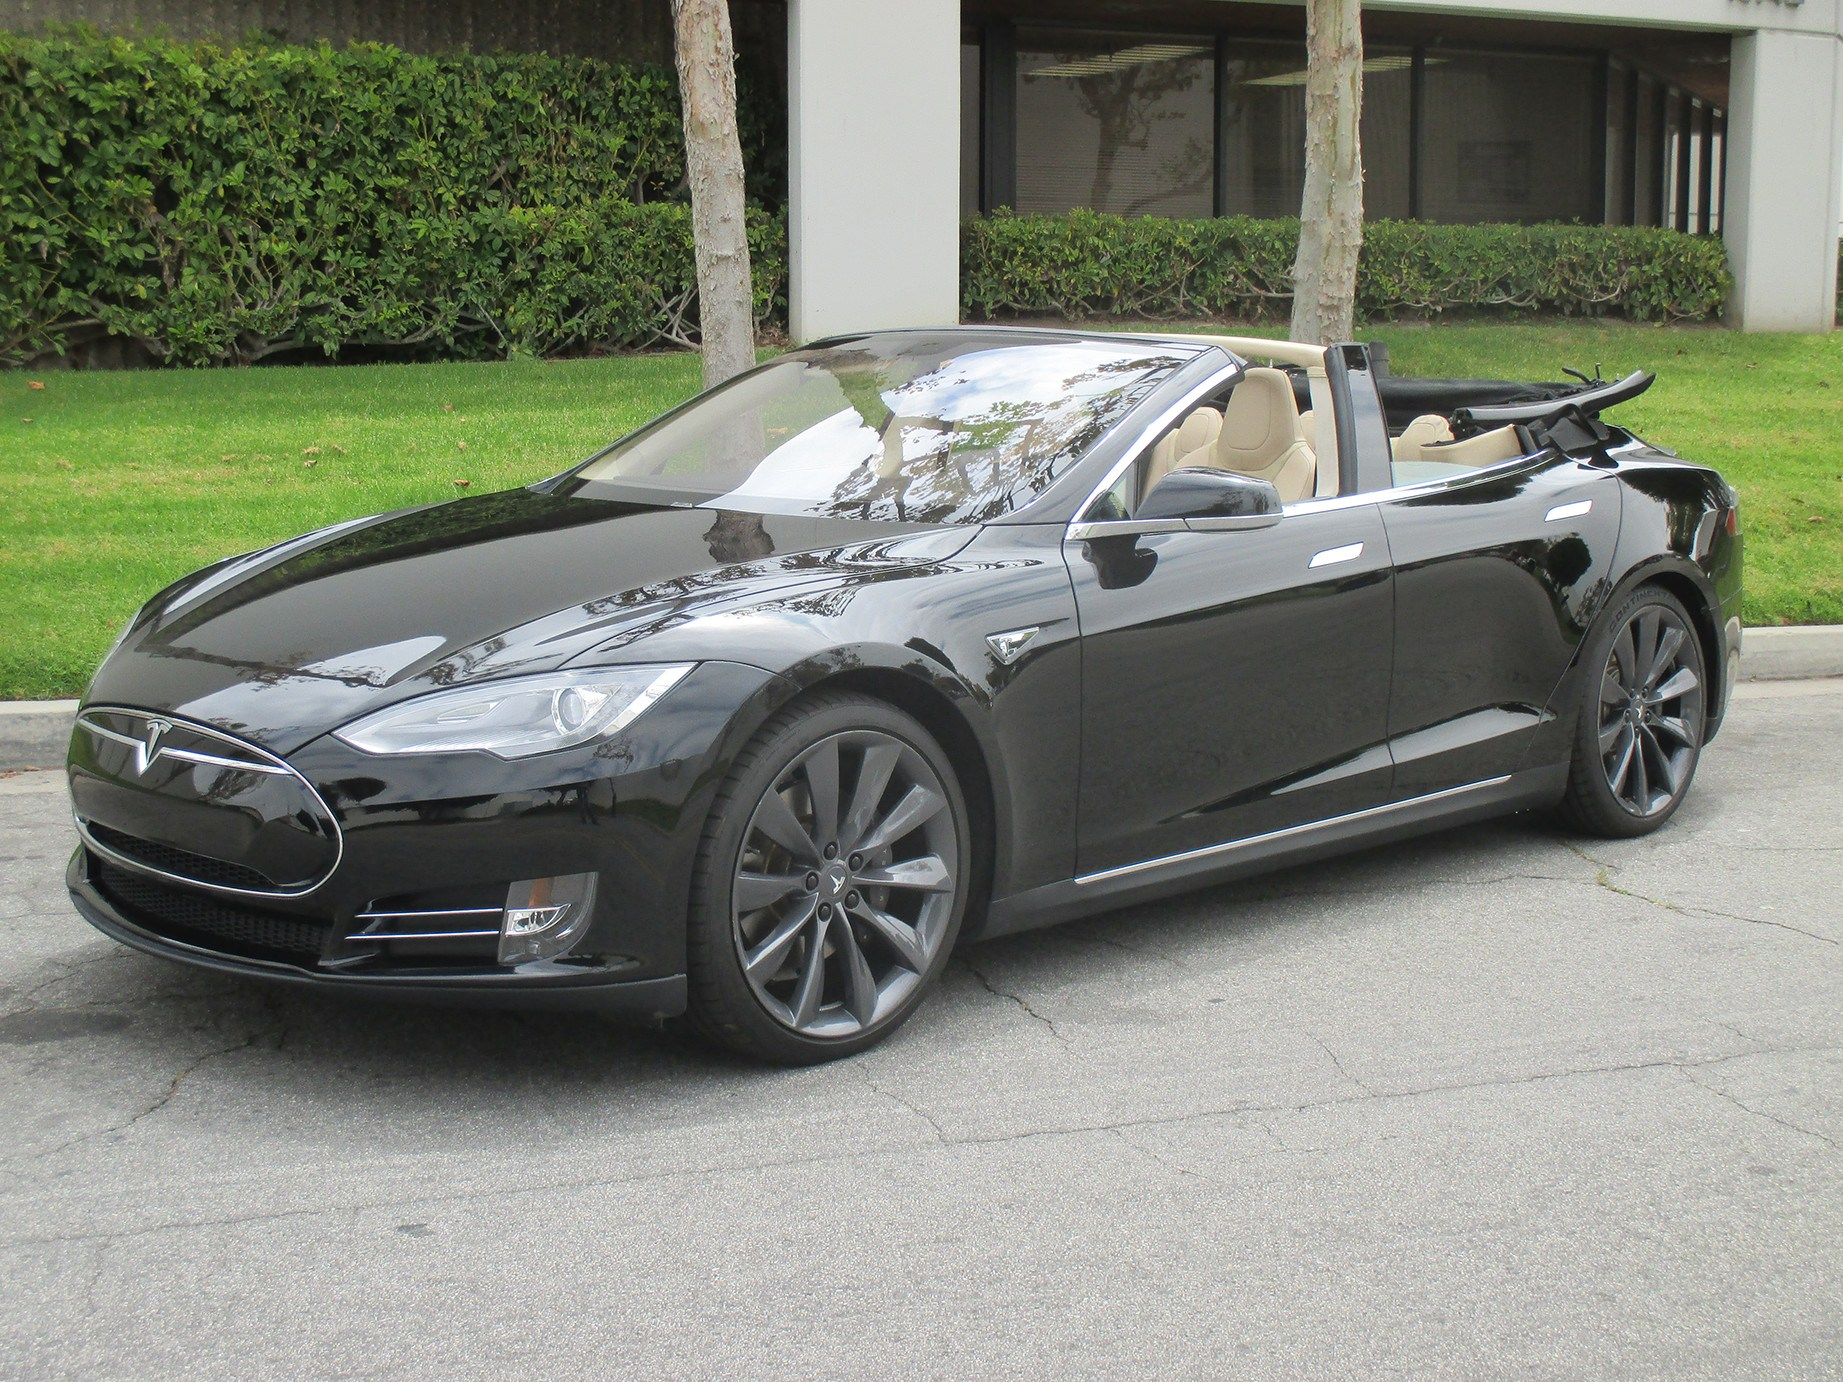 tesla model s convertible. Black Bedroom Furniture Sets. Home Design Ideas